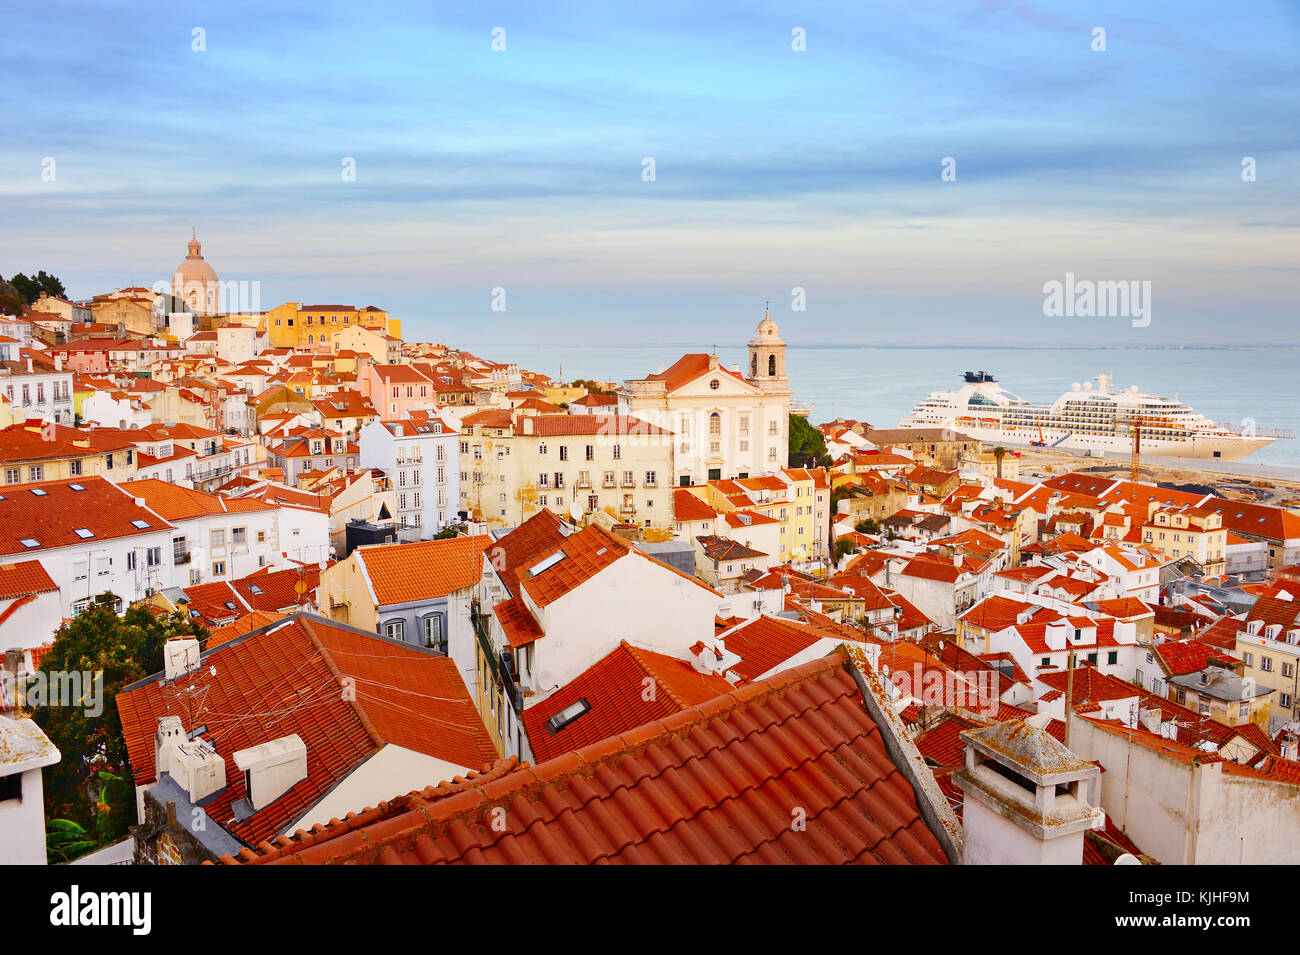 Skyline of Alfama - Lisbon Old Town at sunset. Portugal - Stock Image